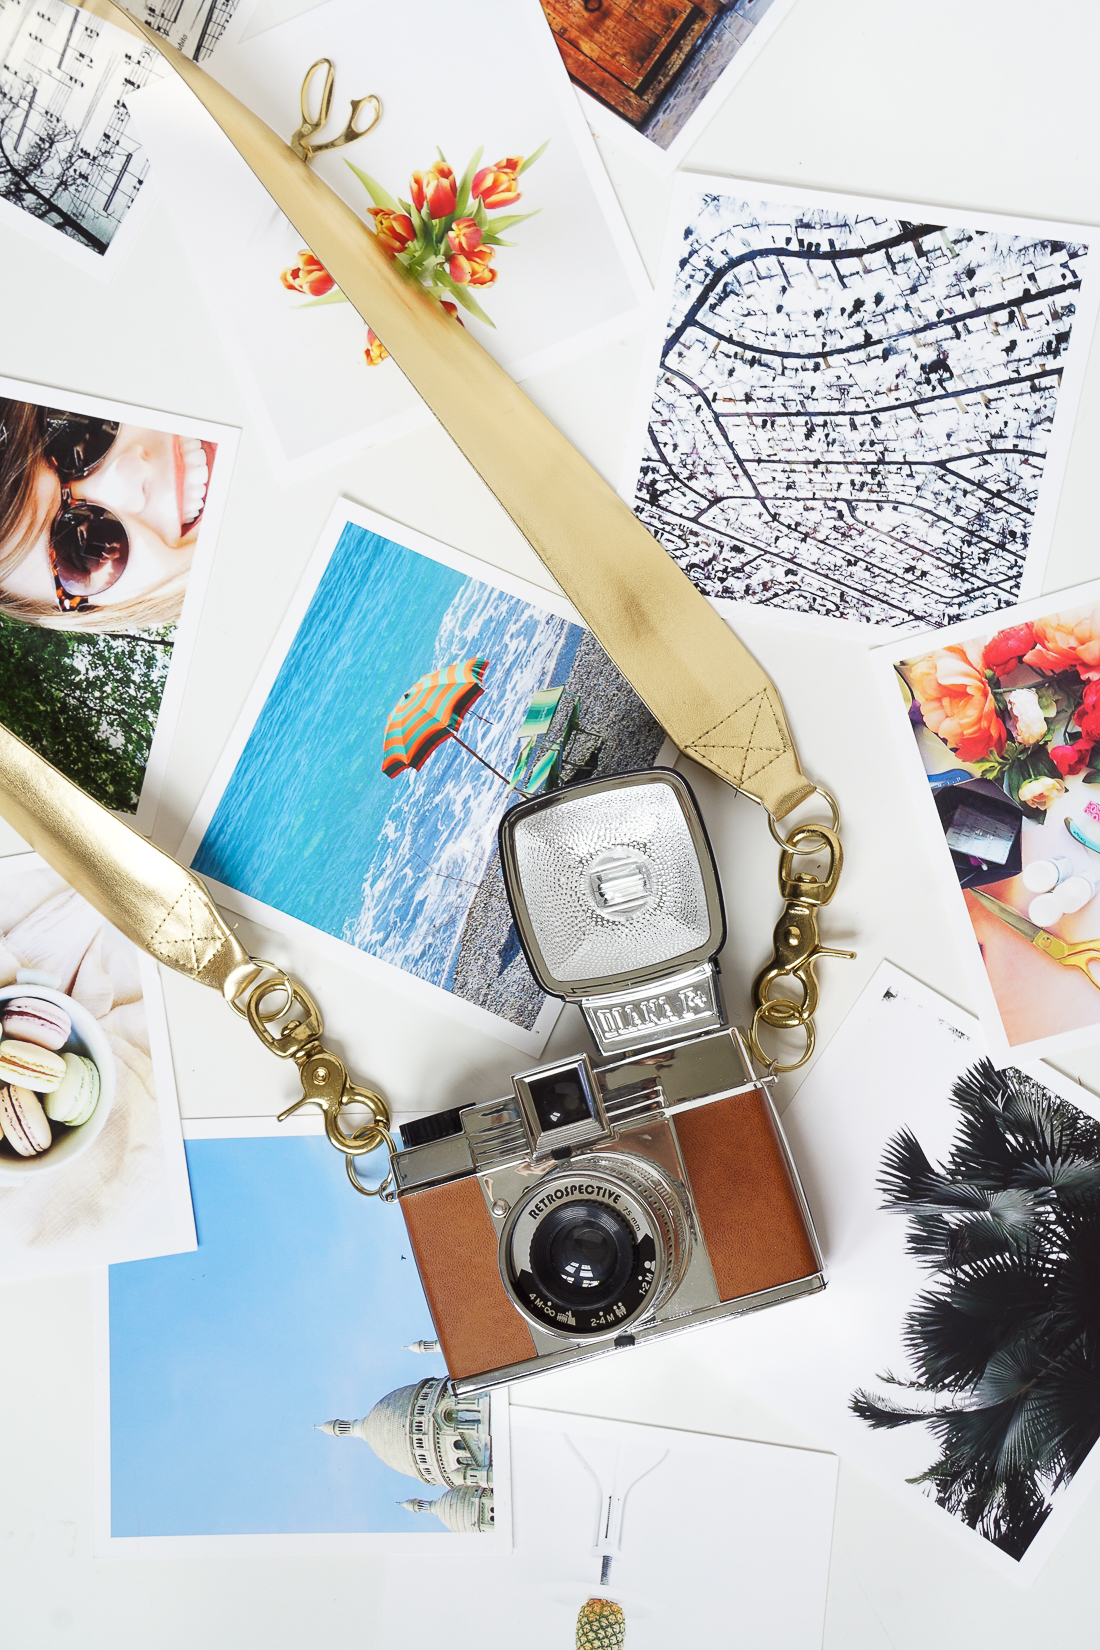 Need a camera strap? We hear you. Check out this glam camera strap tutorial. Click for full details!